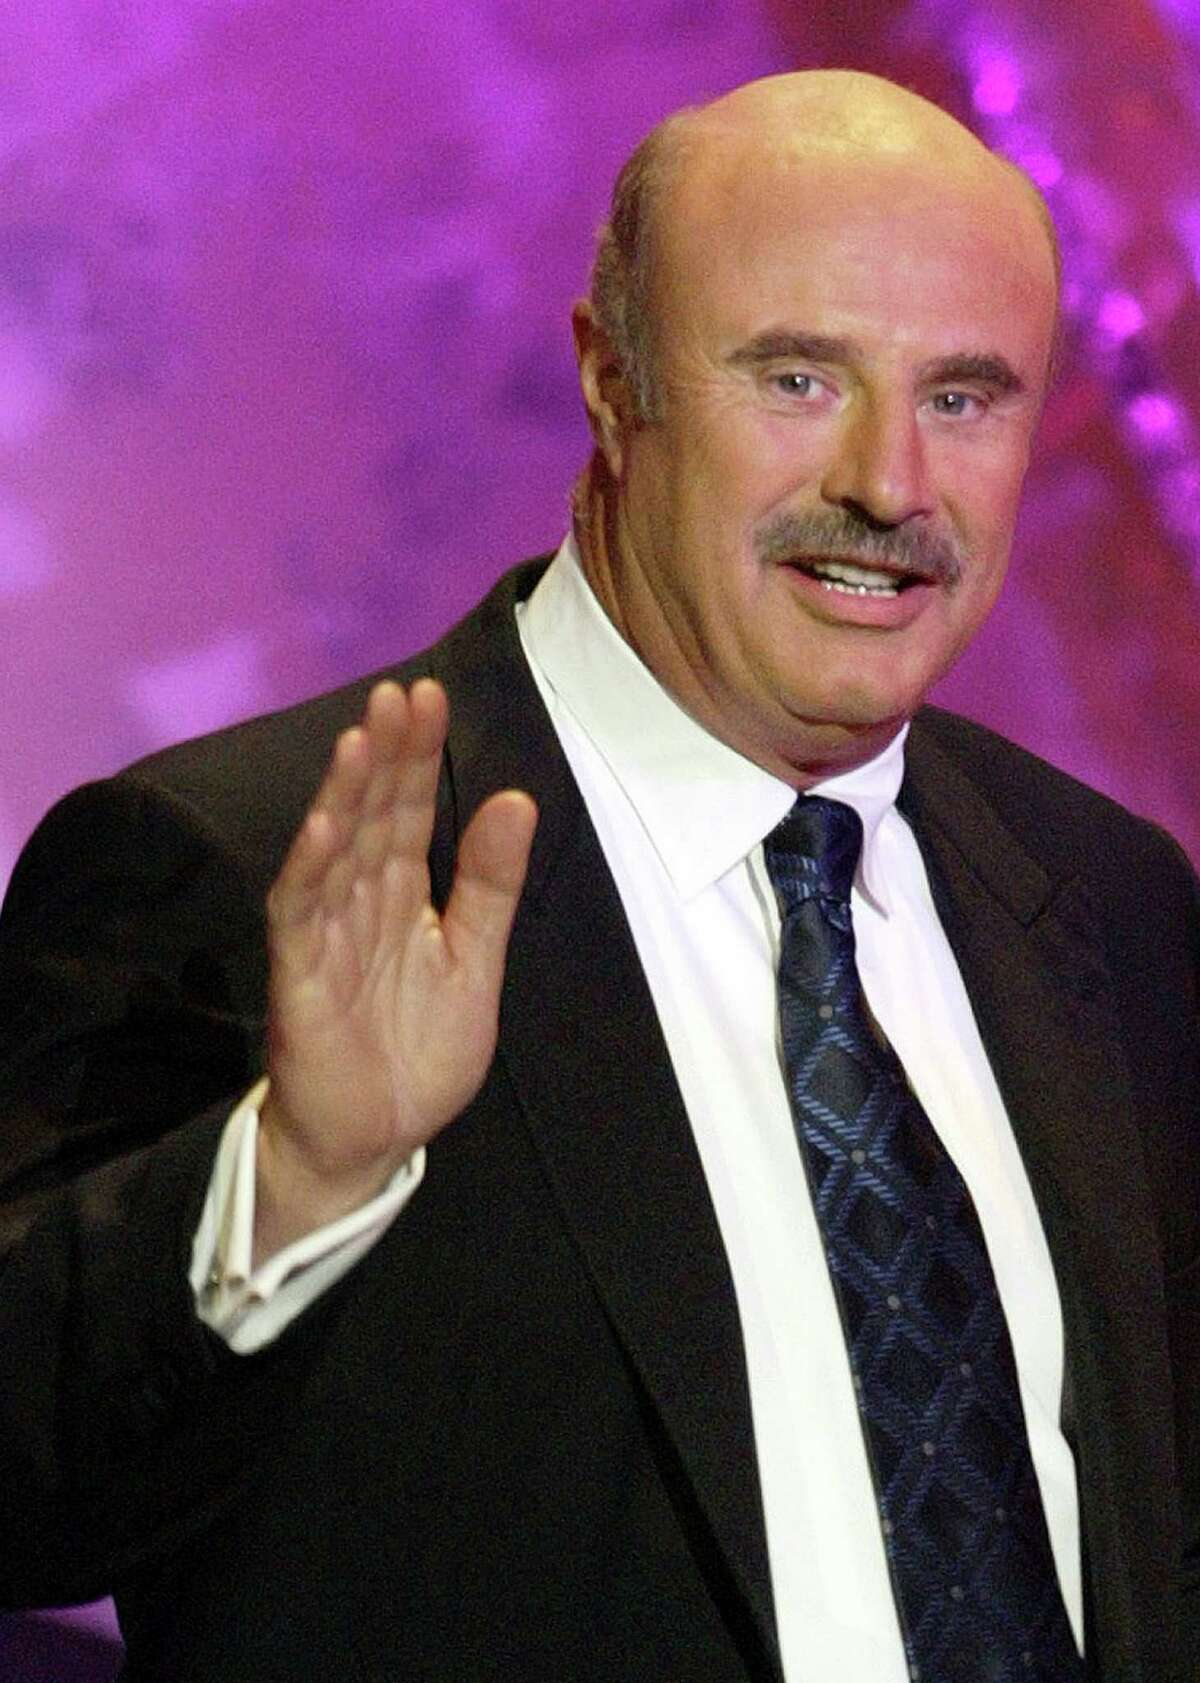 """4. Dr. Phil McGraw - $88 million The TV personality's income is a mixture of his eponymous daytime show, being executive producer of """"The Doctors,"""" the Doctor On Demand app, and he shills for the AARP and AstraZeneca. Source:Forbes"""